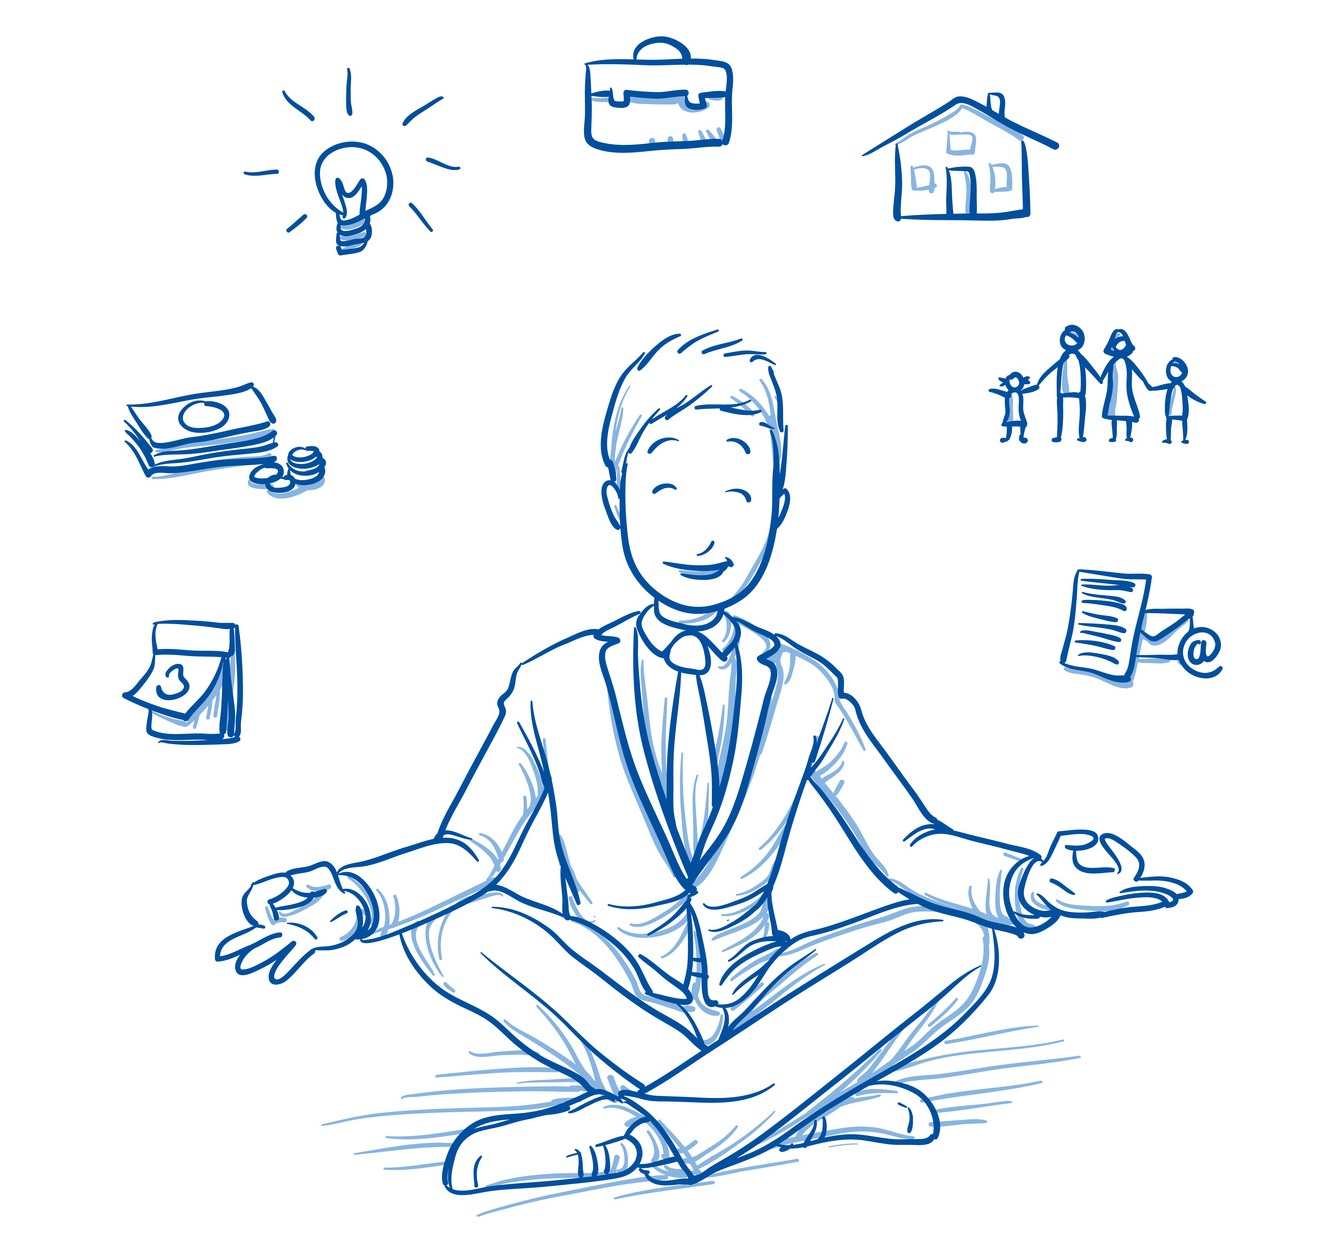 Happy young man in business suit sitting in yoga pose with icons of easily organizing life, business and family around him. Hand drawn line art cartoon vector illustration.